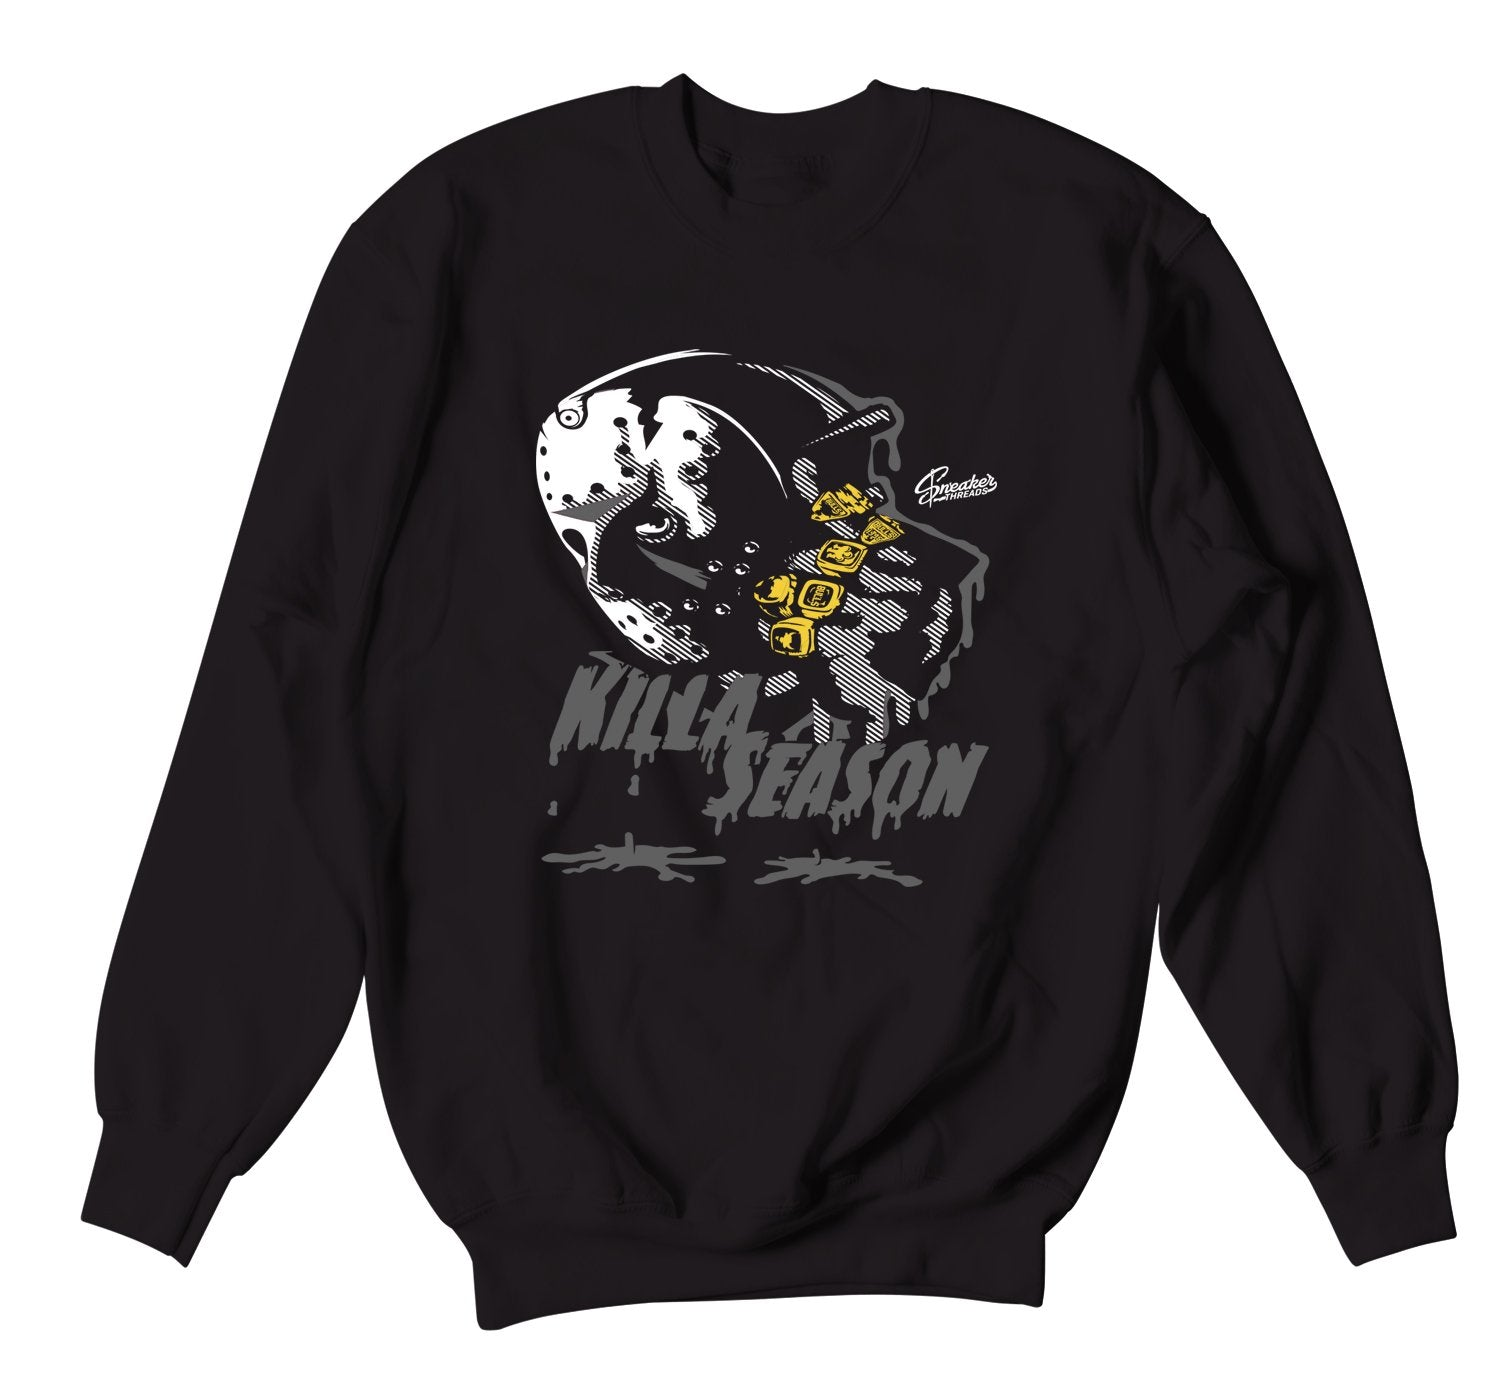 Black Cat Jordan 4 sneaker collection matching sweater crewnecks